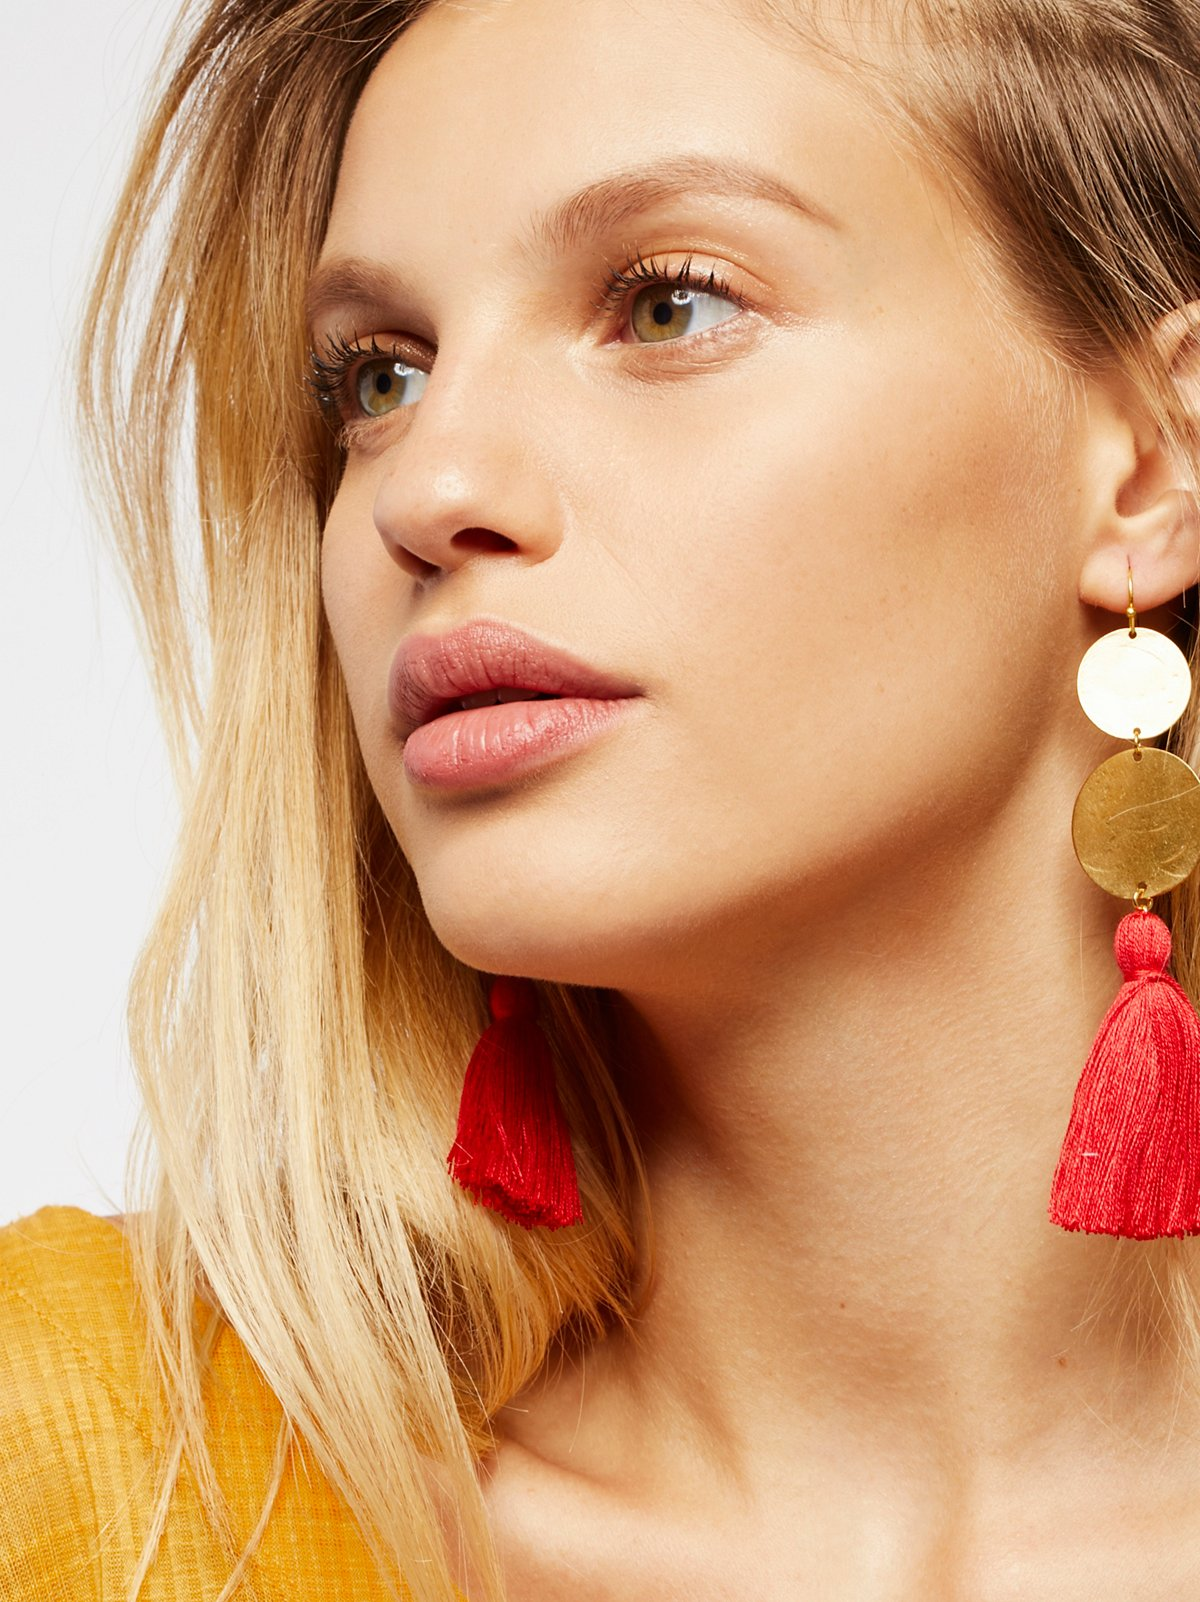 Statement Earrings To Take Your Outfit From Good To Great